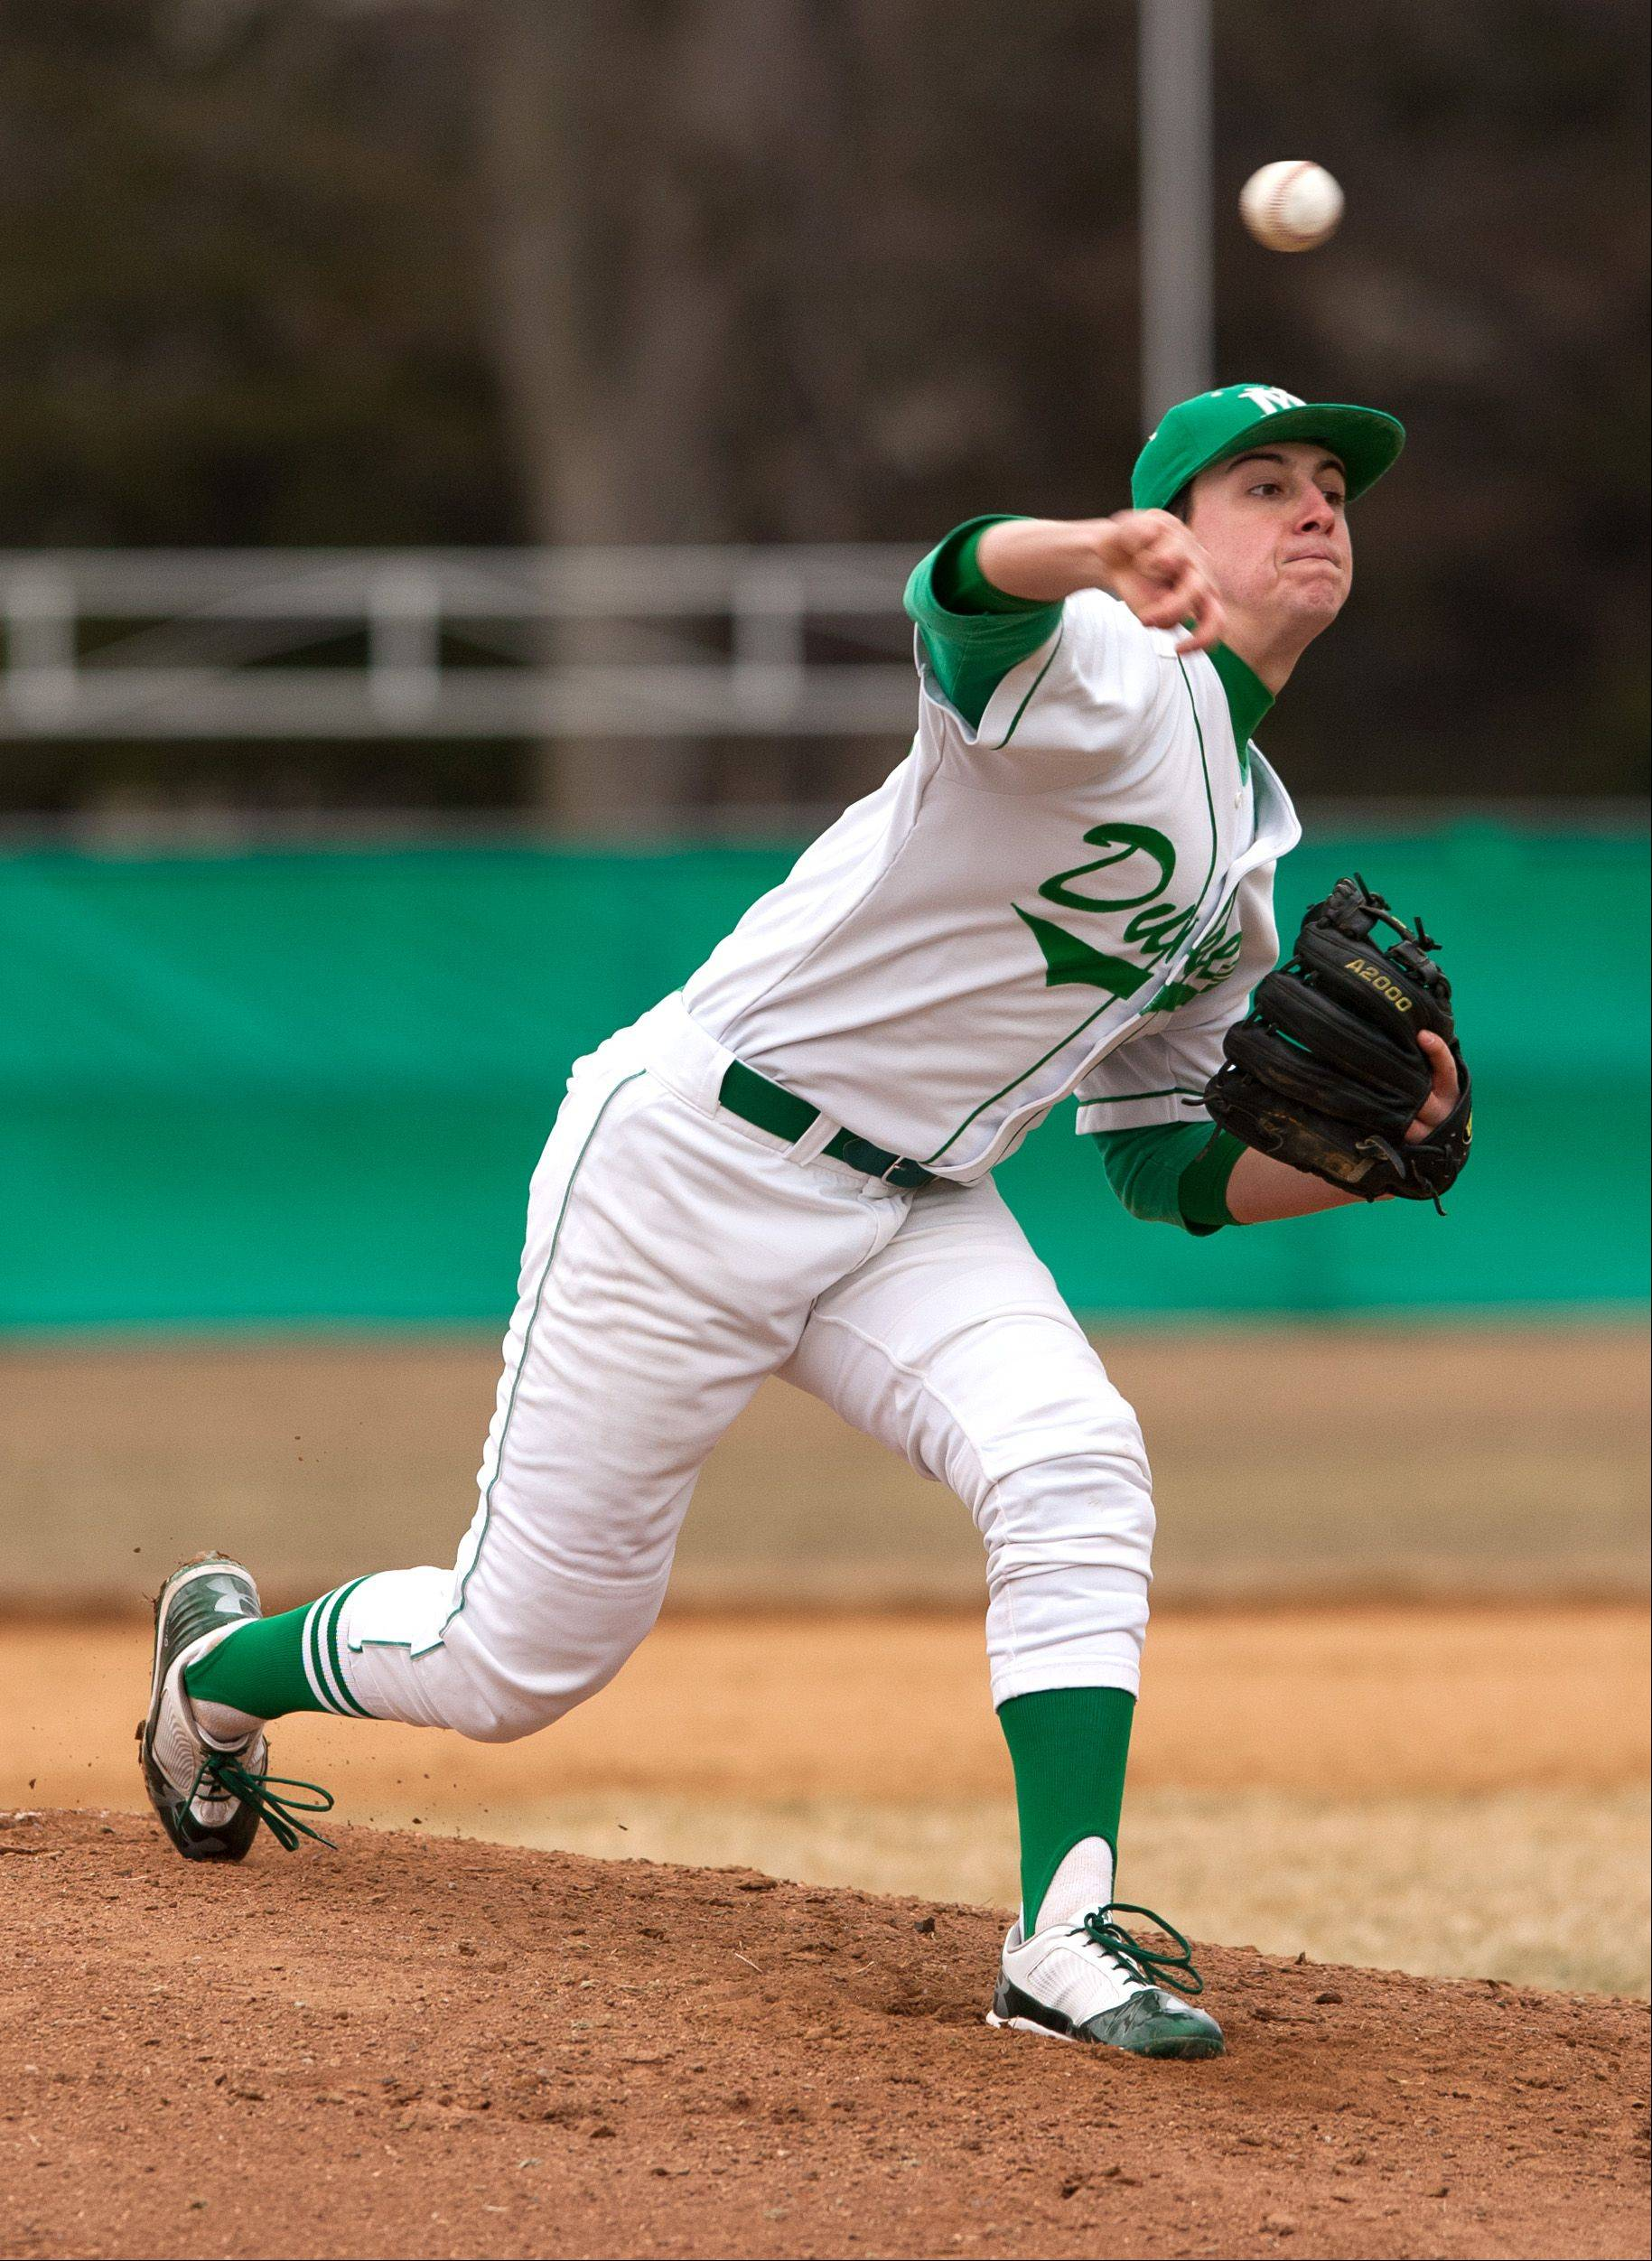 York's River Pitlock delivers a pitch against Benet during baseball action in Elmhurst.